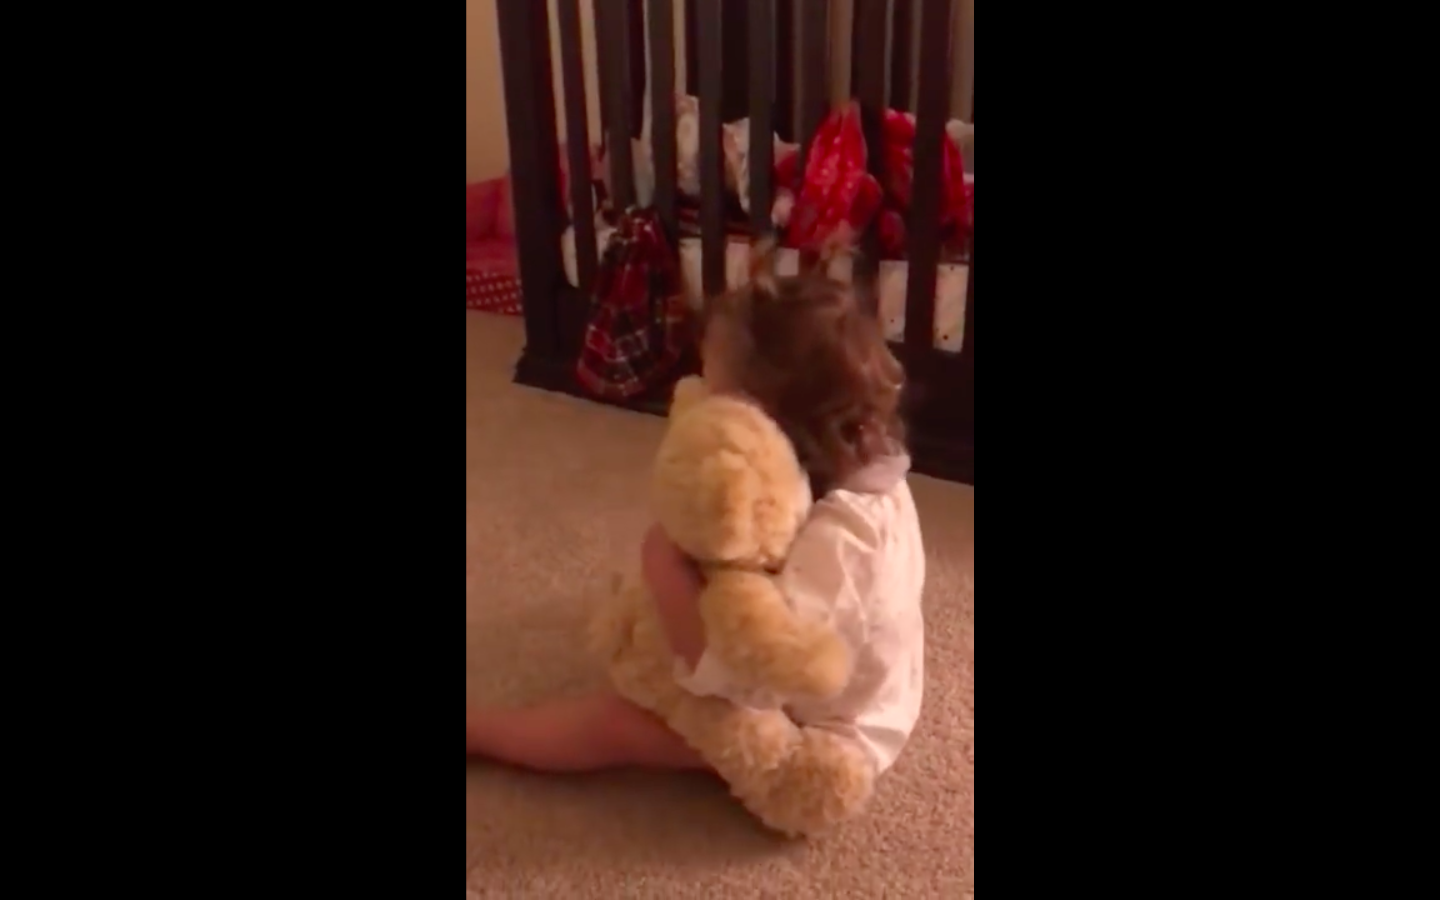 Baby Girl Hears Her Deployed Military Dad's Voice In Teddy Bear